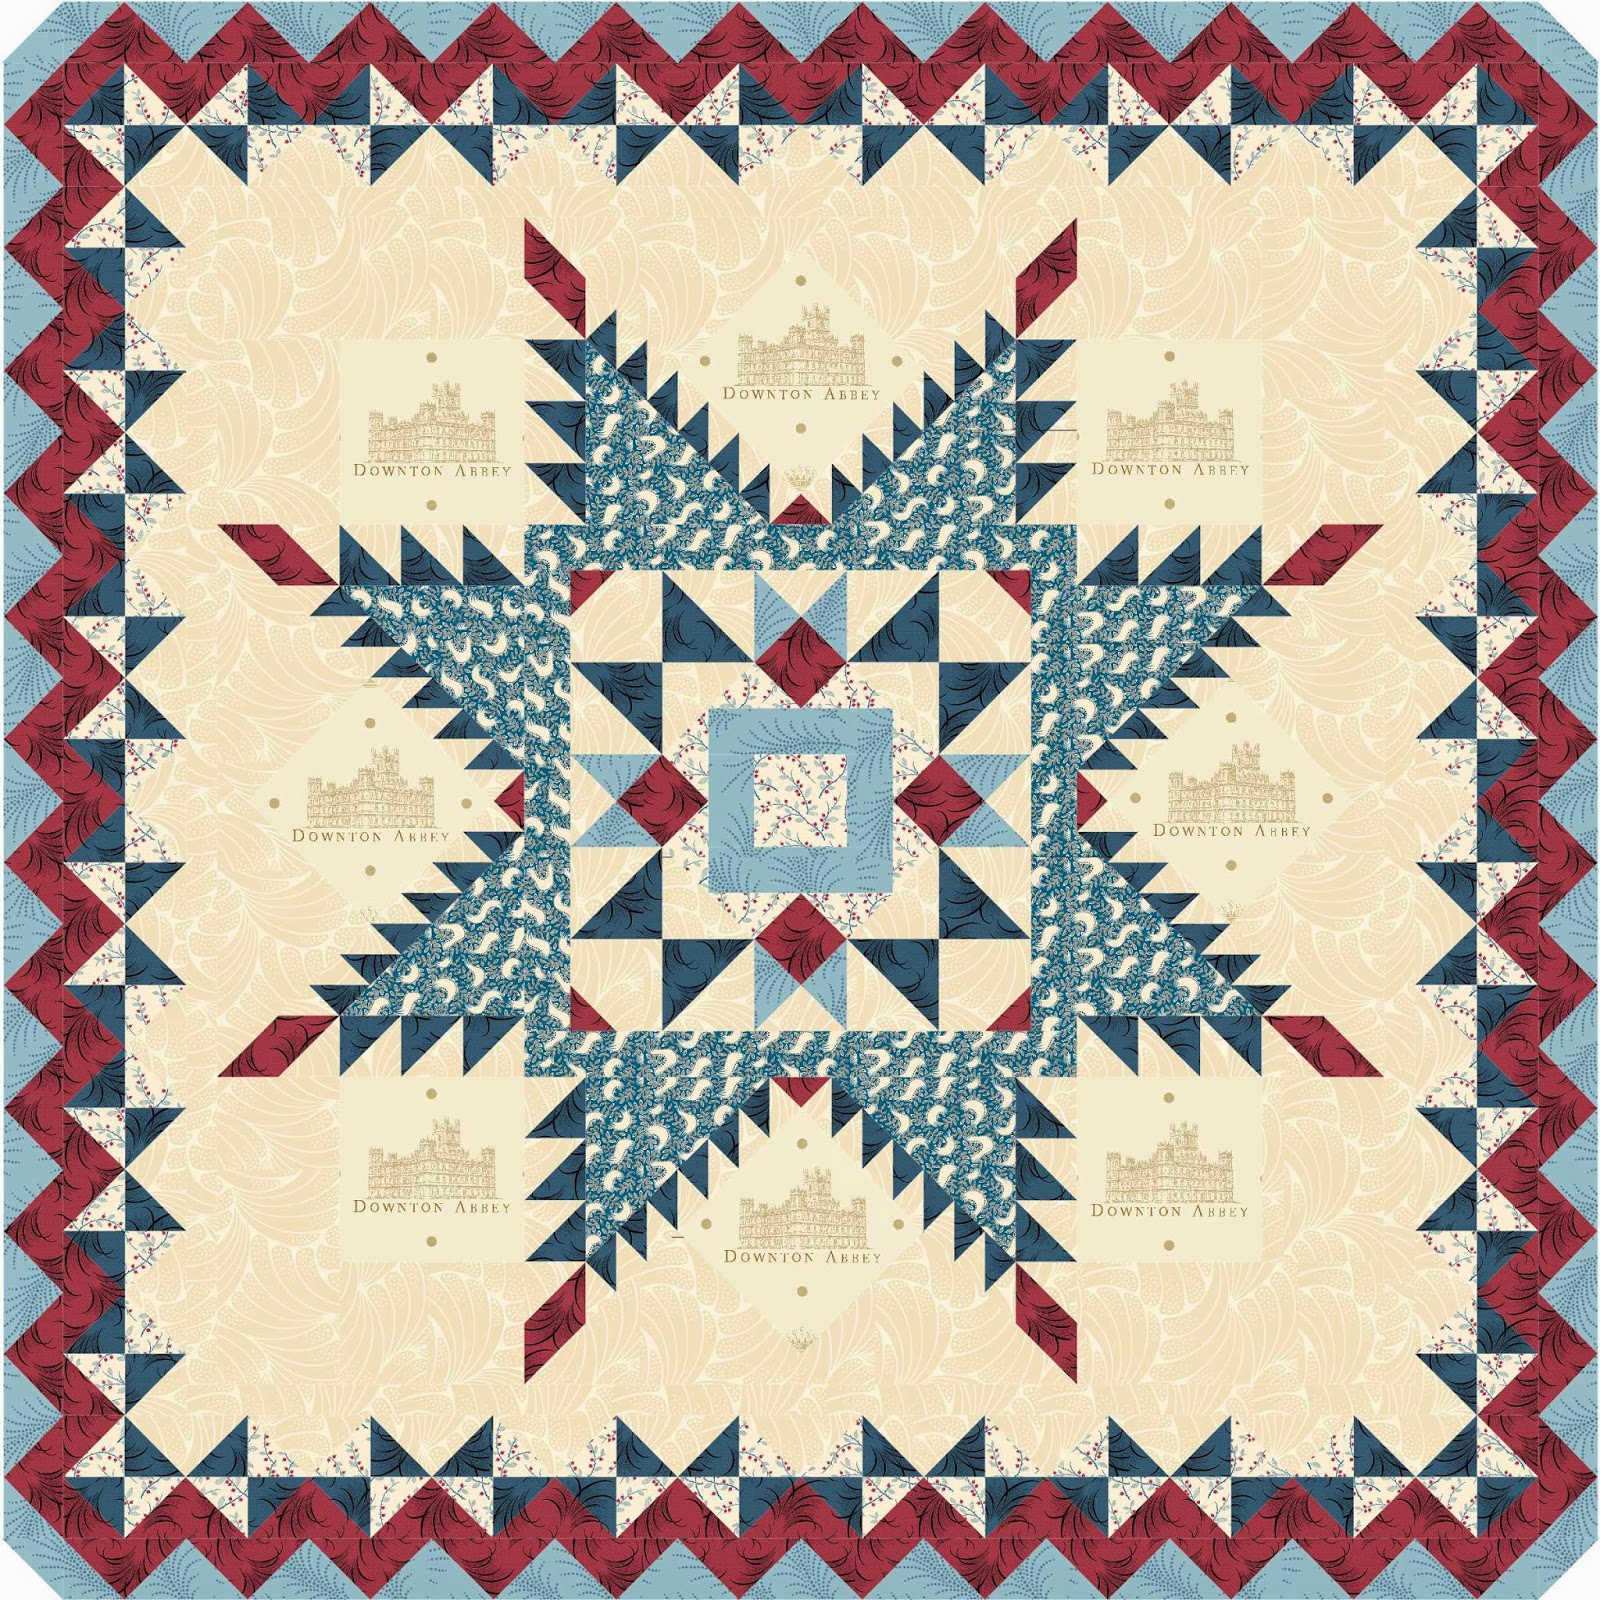 Patriotic Quilt Patterns For Free : Quilt Inspiration: Free pattern day: Patriotic and flag quilts